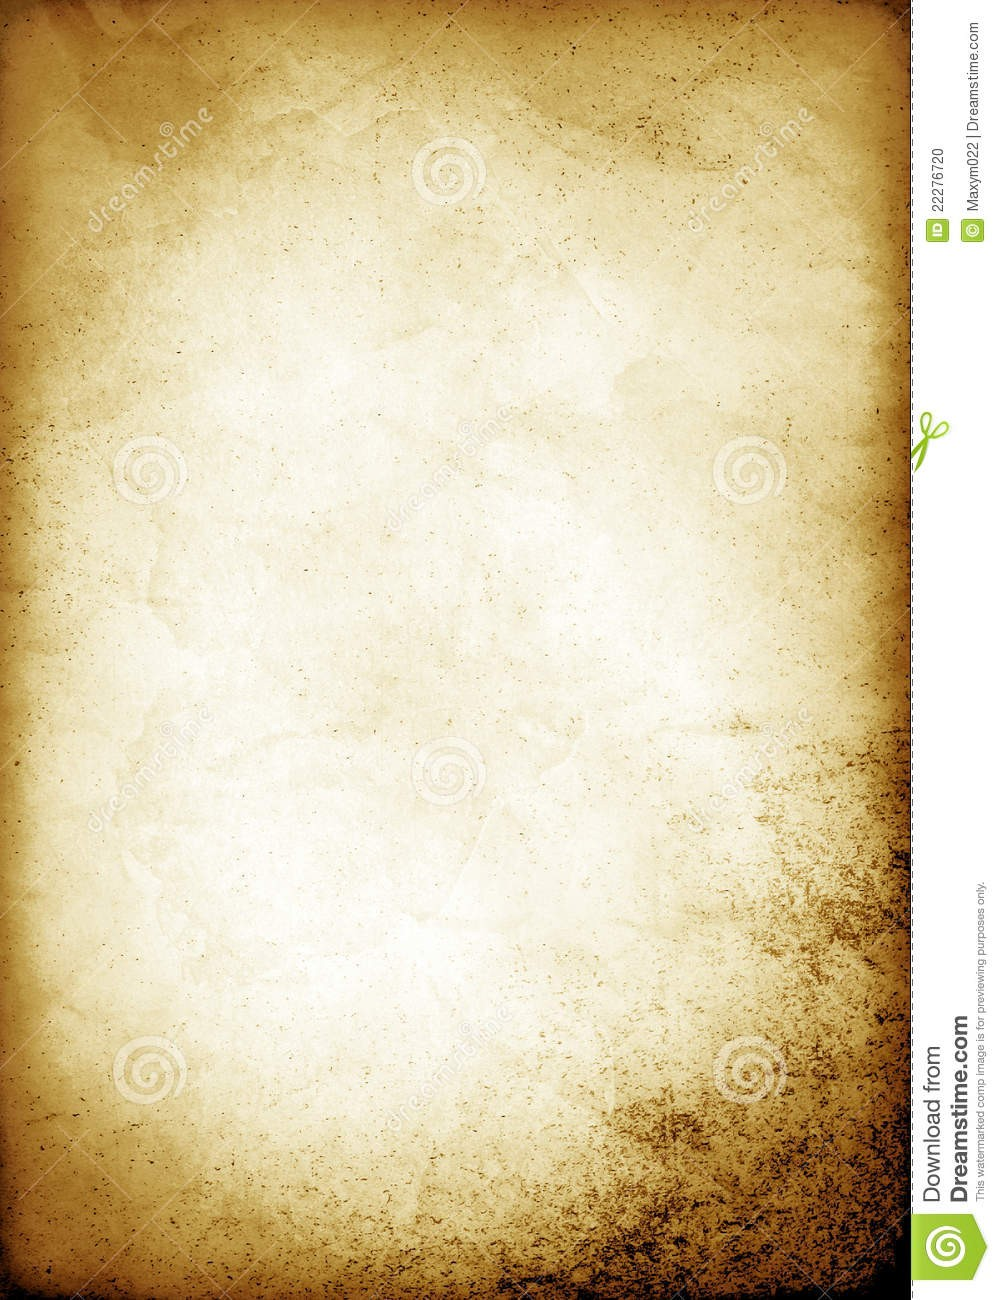 letter template old fashioned  Old Paper Template Stock Photo - Image: 22276720 - letter template old fashioned